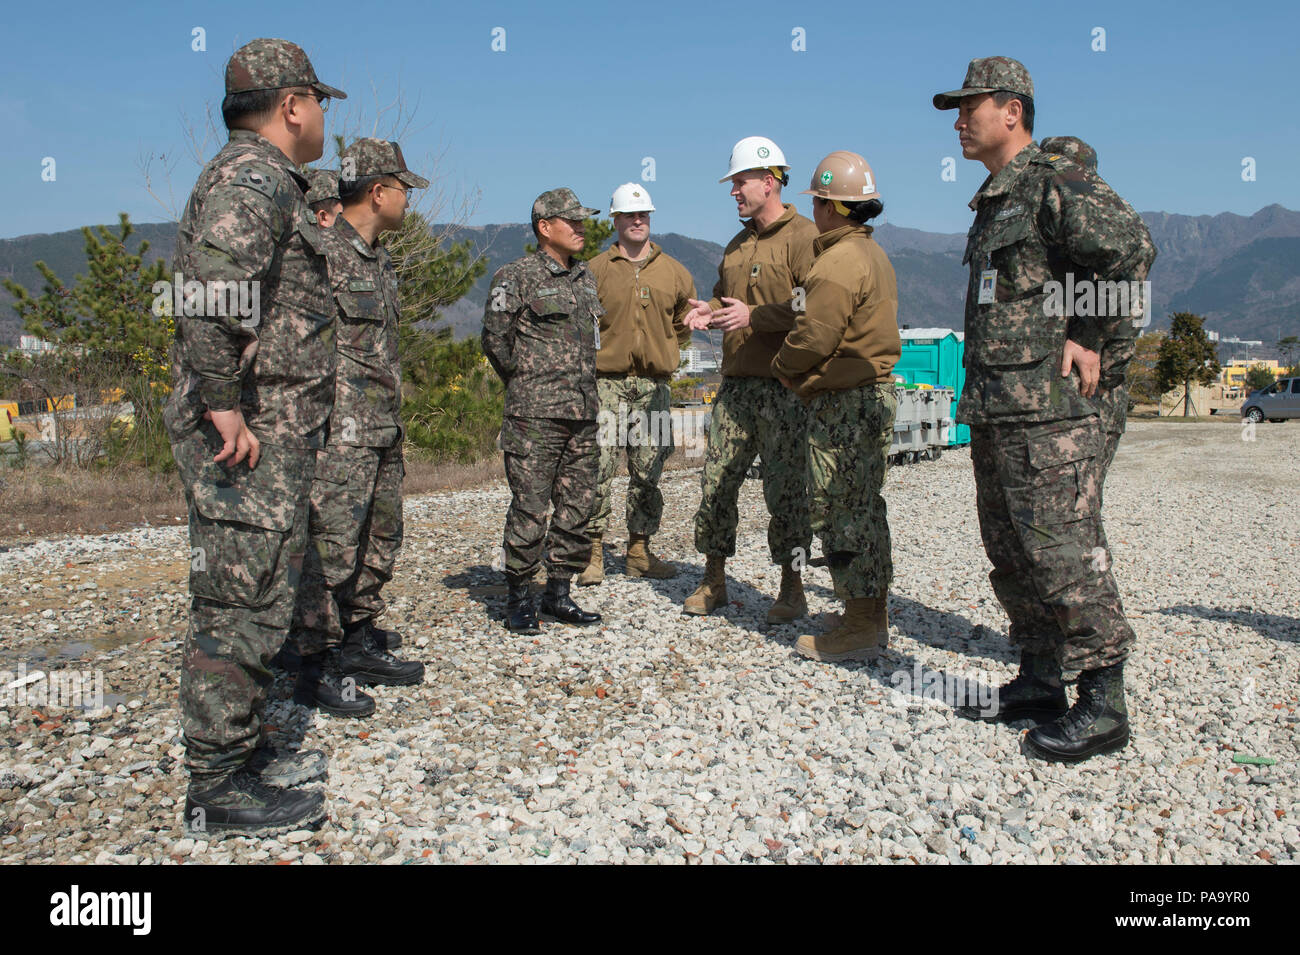 160309-N-HA376-864 BUSAN, Republic of Korea (March 9, 2016) - U.S. Navy Cmdr. Ross Campbell, assigned to the 30th Naval Construction Regiment (30 NCR), speaks with Republic of Korea (ROK) Rear Adm. Won Lae Cho, commander, Naval Education Training Group 2, after a tour of 30 NCR's combat operations center for exercise Foal Eagle 2016. 30 NCR is forward deployed to provide command and control of U.S. Navy Seabees working with their ROK counterparts during Foal Eagle. Foal Eagle is an annual, bilateral training exercise designed to enhance the readiness of U.S. and ROK forces, and their ability t - Stock Image